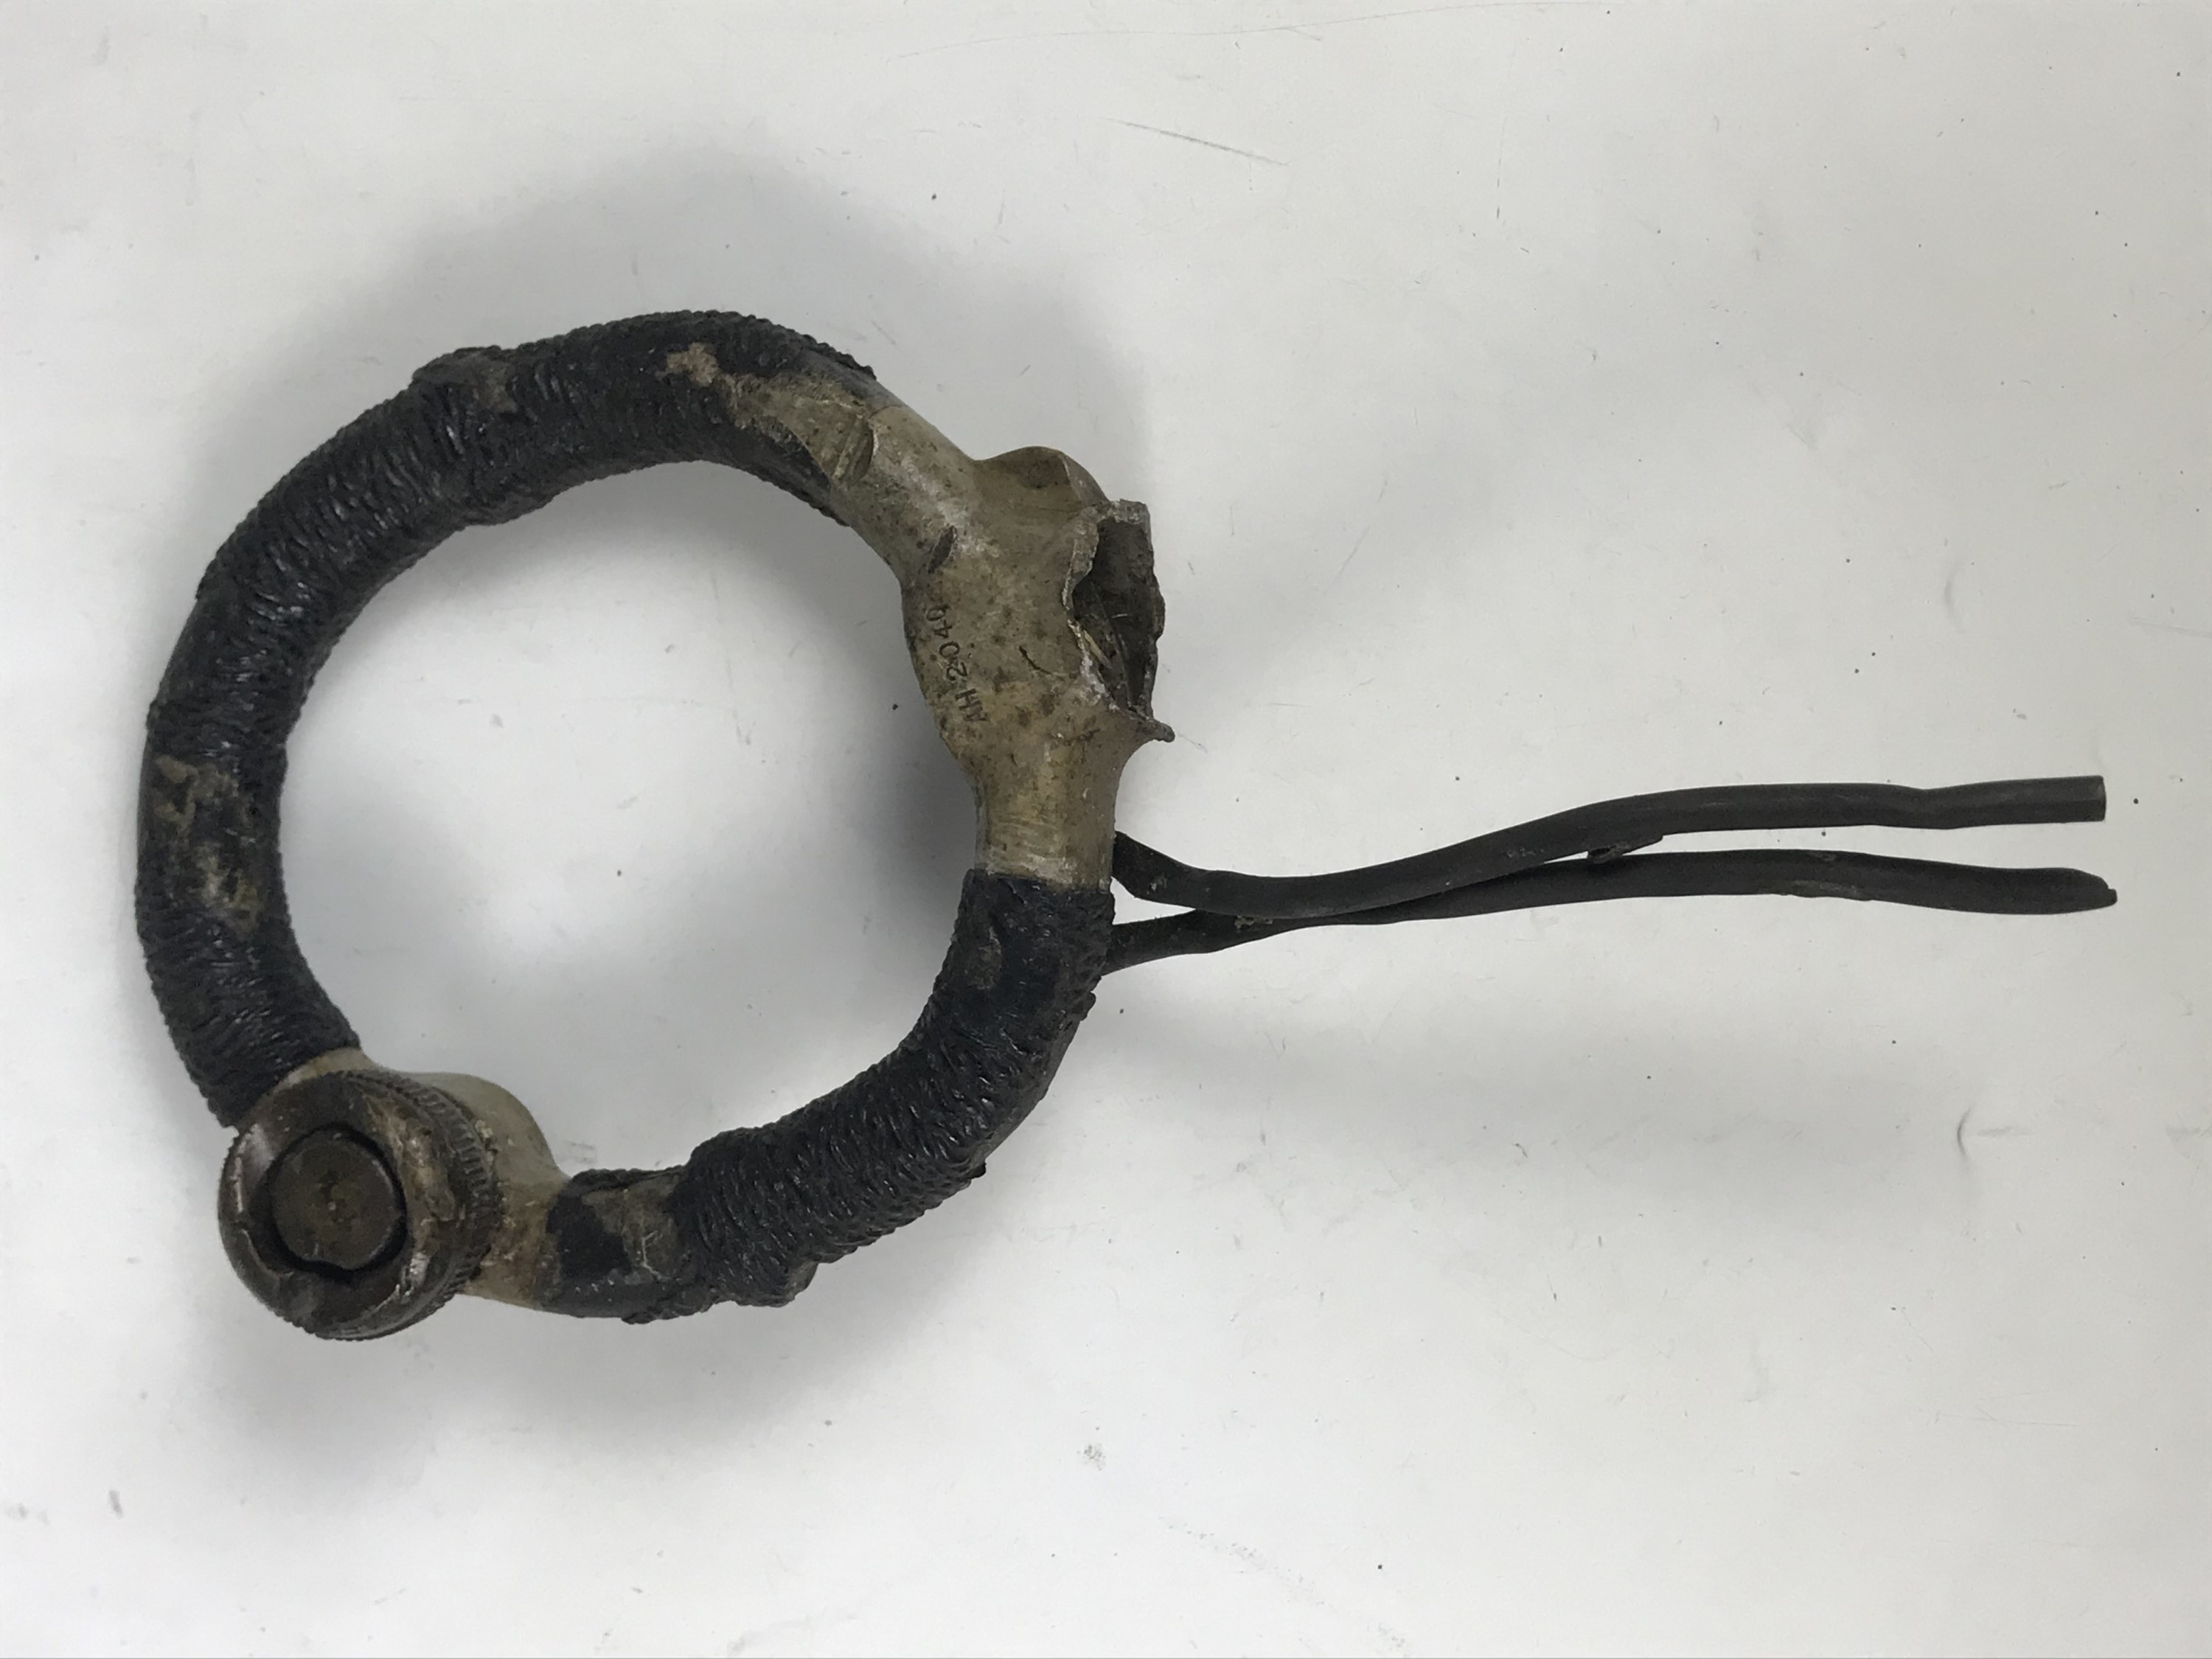 Lot 657 - A relic Second World War RAF control column spade grip, parts number AH2040 as used on Hurricanes